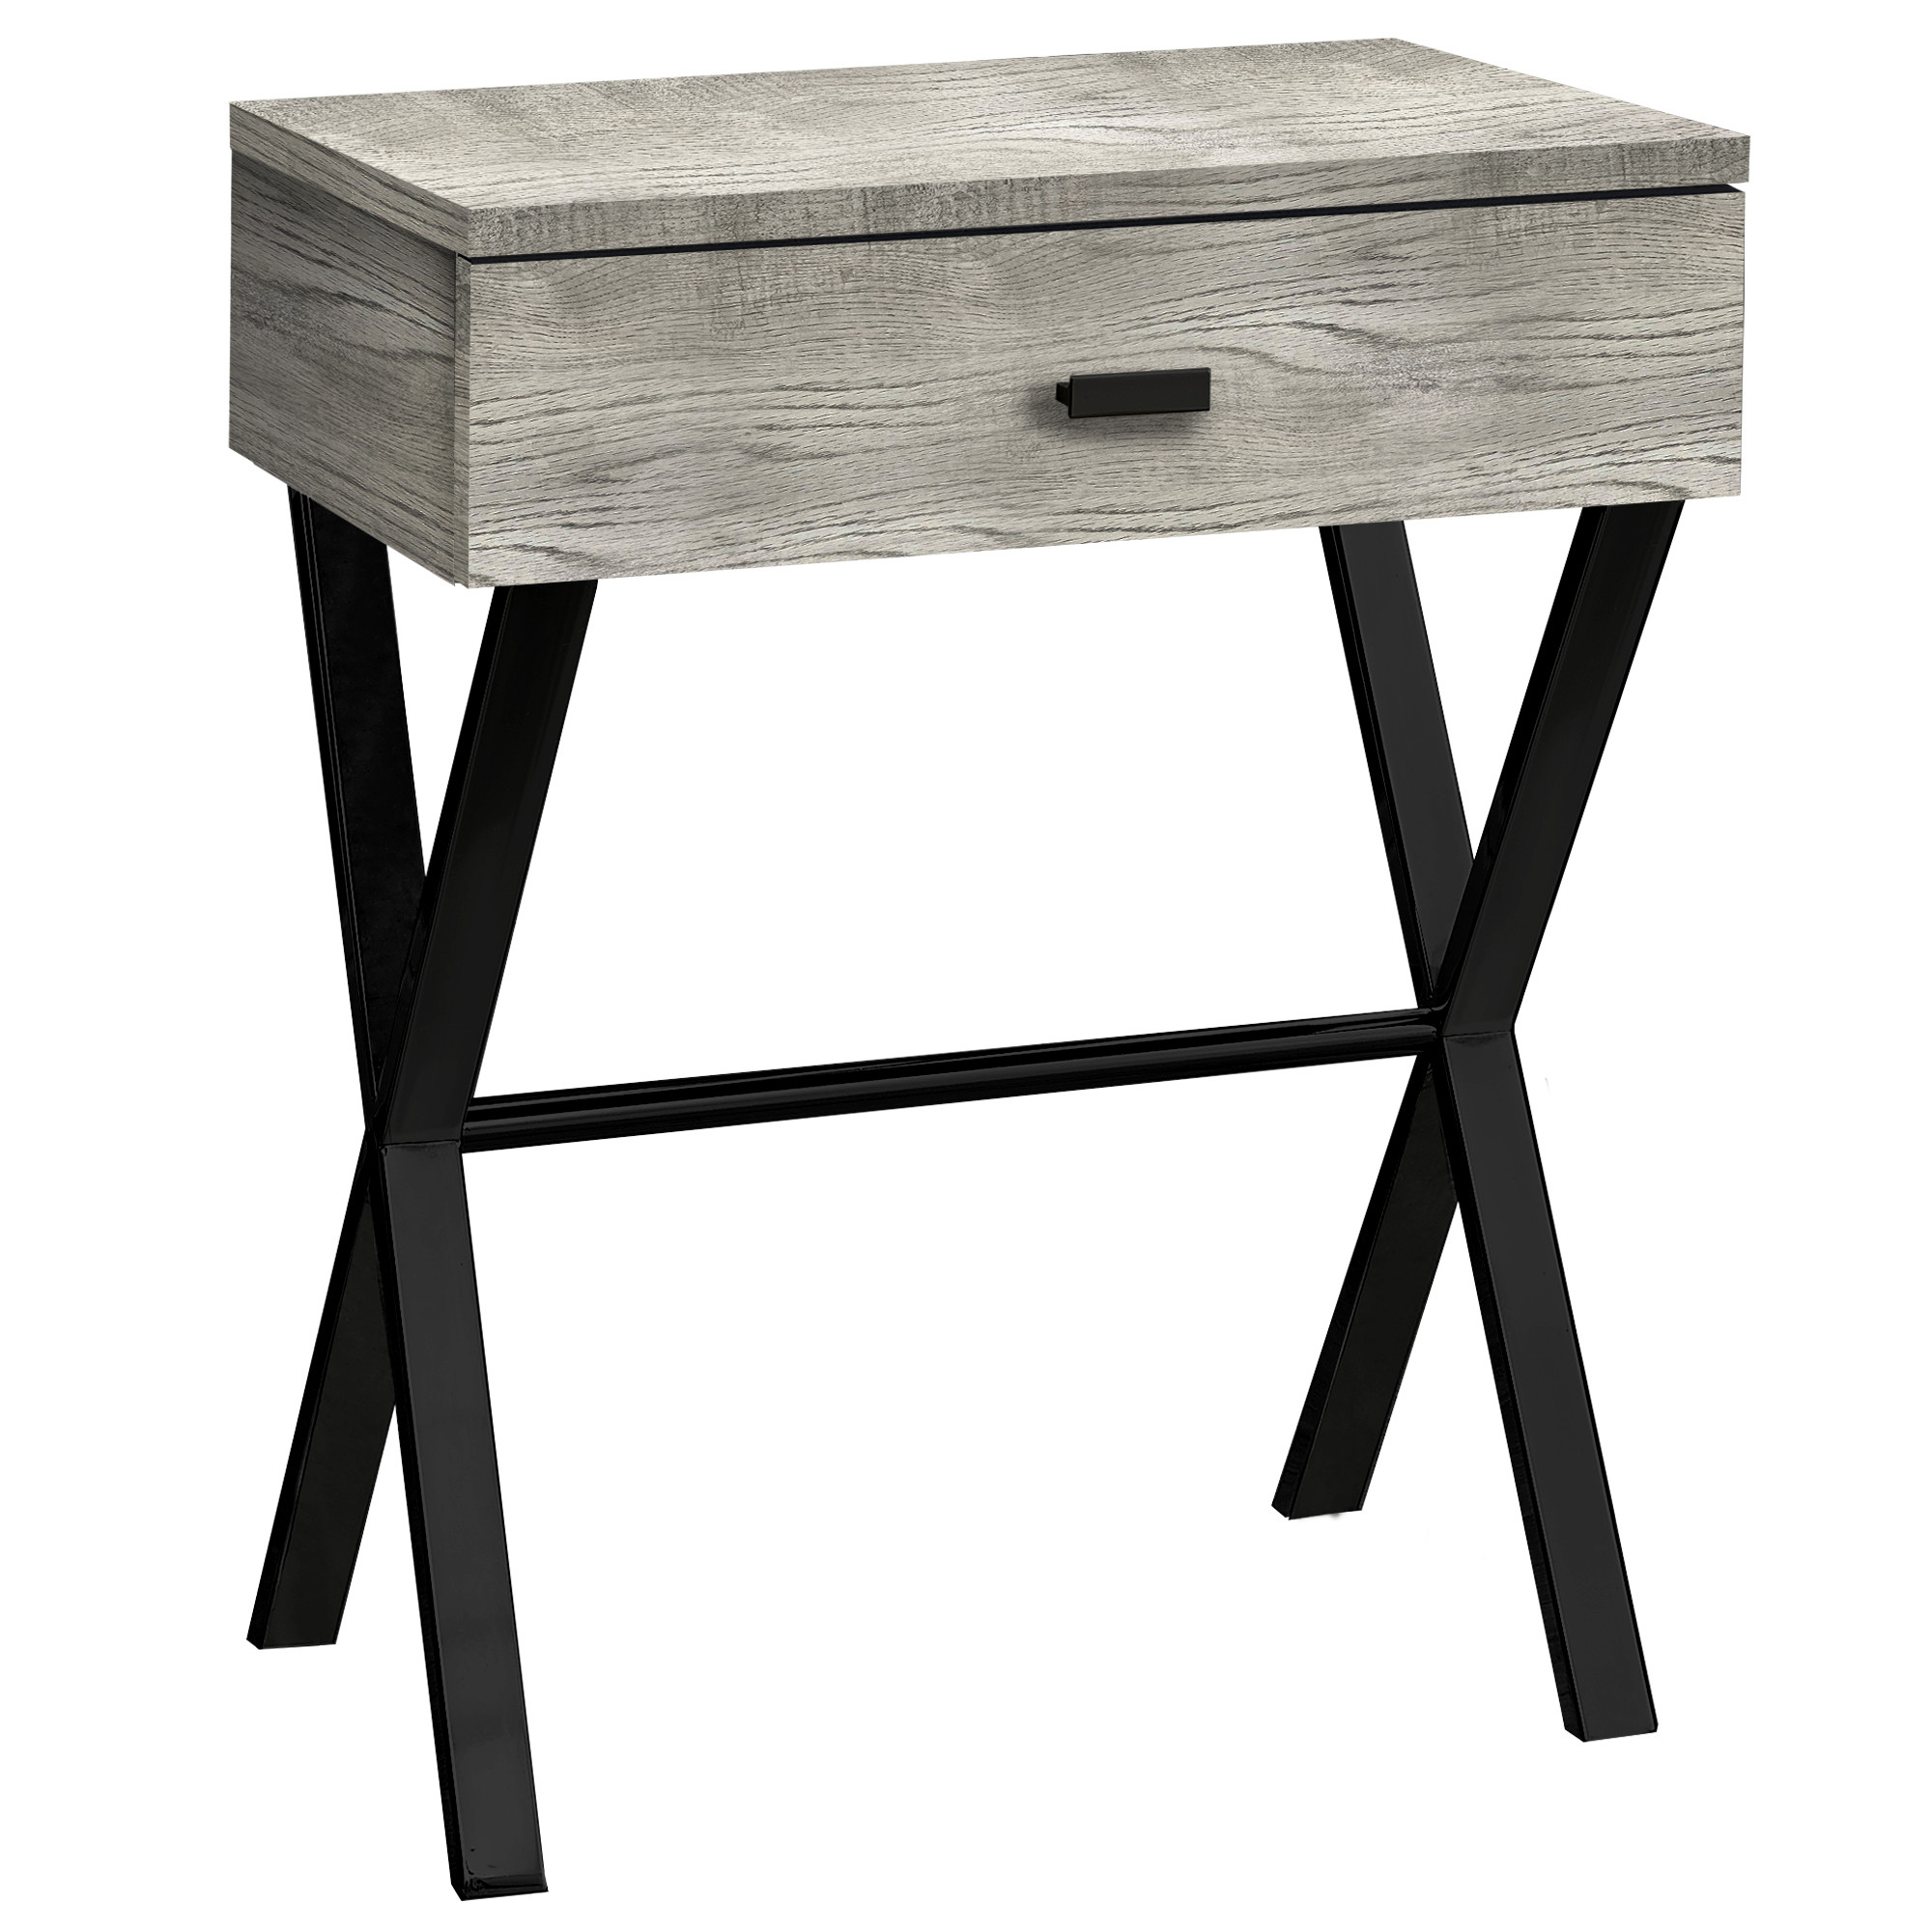 Details About Monarch Specialties I 3450 18 1 4 L Wood Top Laminate And Metal Black Grey